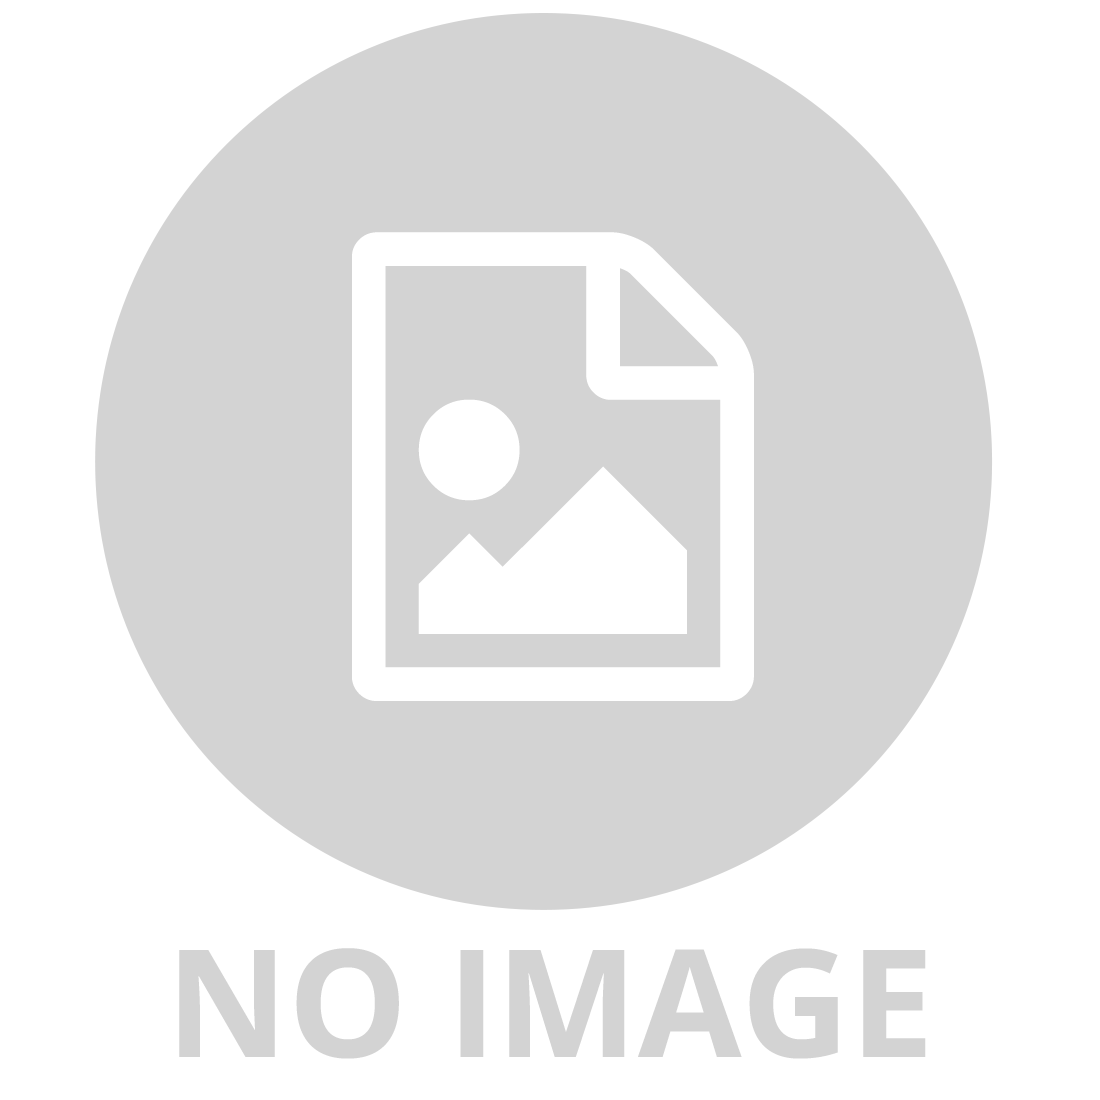 PLAYMOBIL SPIRIT 70120 SNIPS & SENOR CARROTS